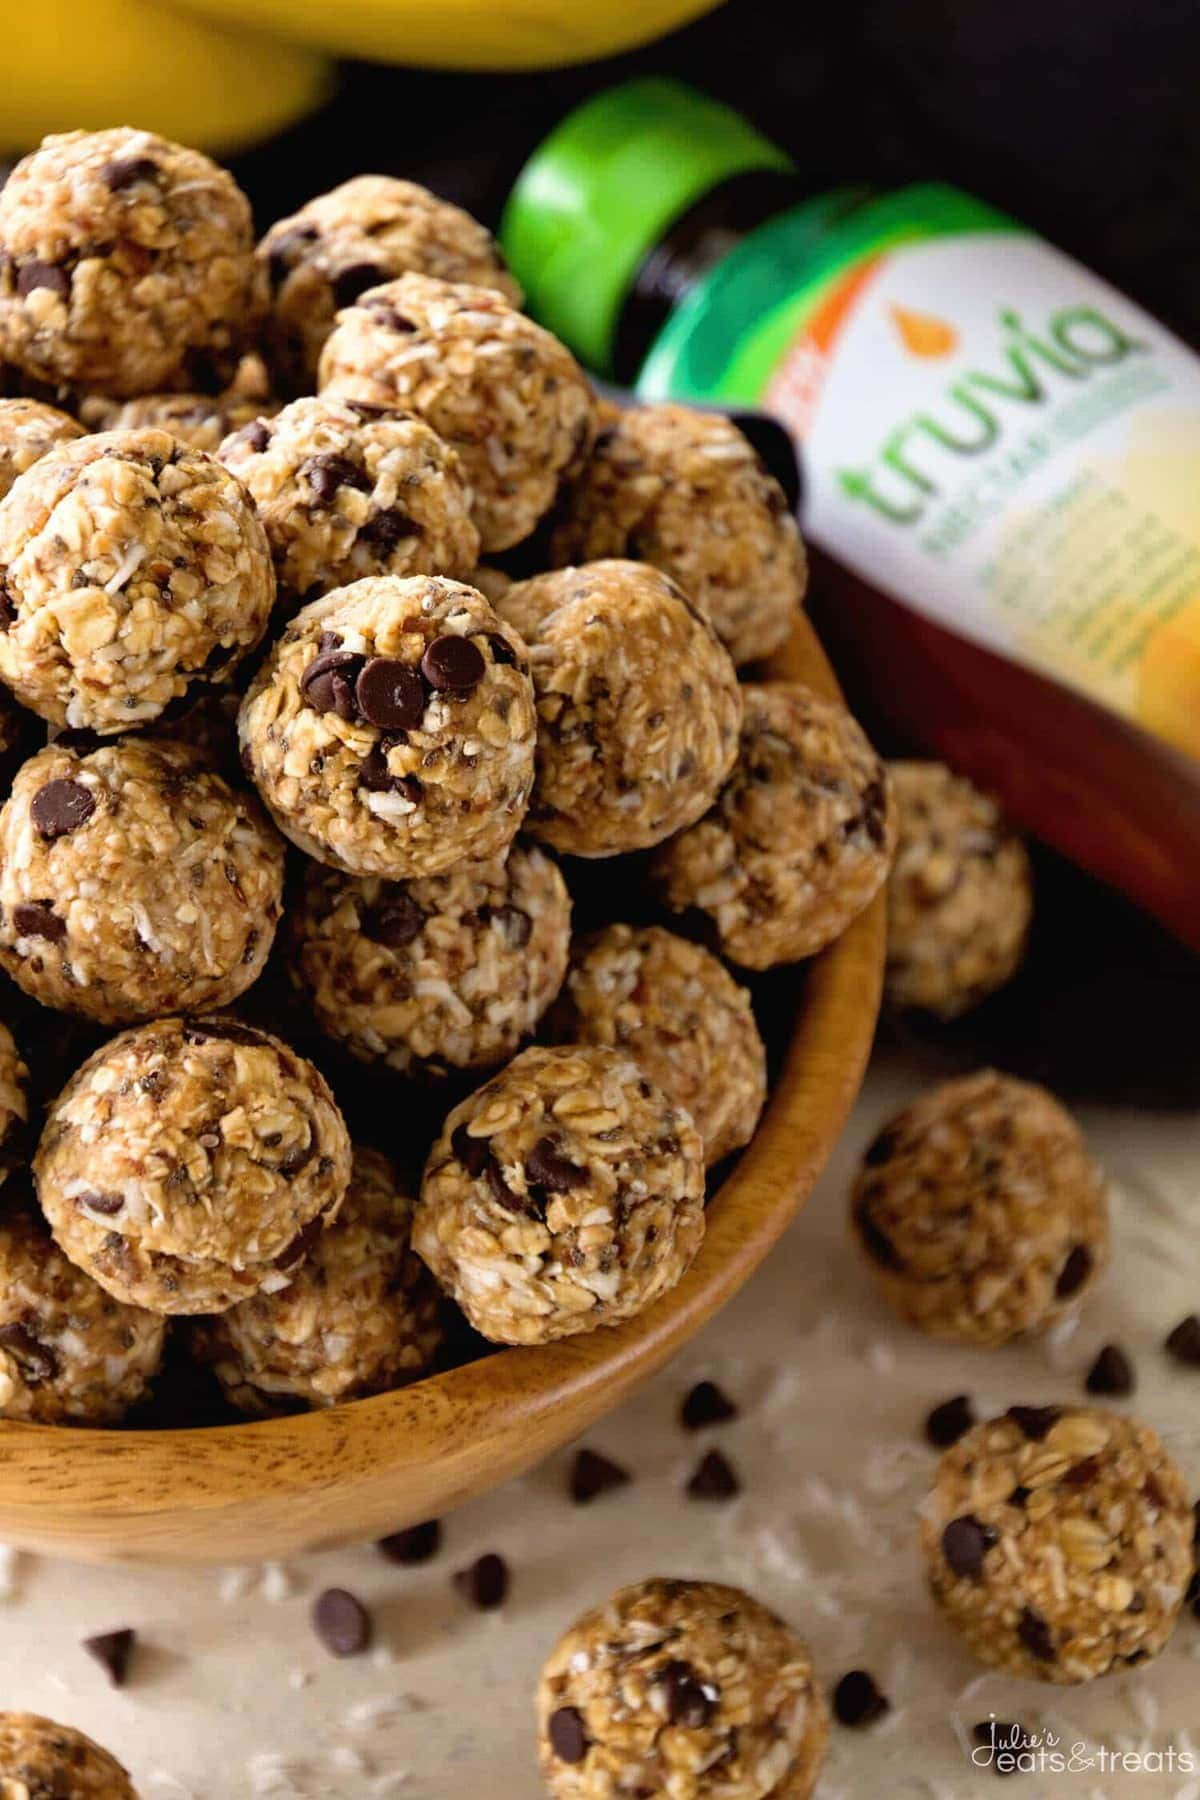 No Bake Chocolate Banana Energy Bites Recipe ~ Delicious Recipe for Energy Bites Loaded with Chocolate Chips, Banana, Coconut, Oats, Flaxseed, Chia Seeds and Spiced with Cinnamon!